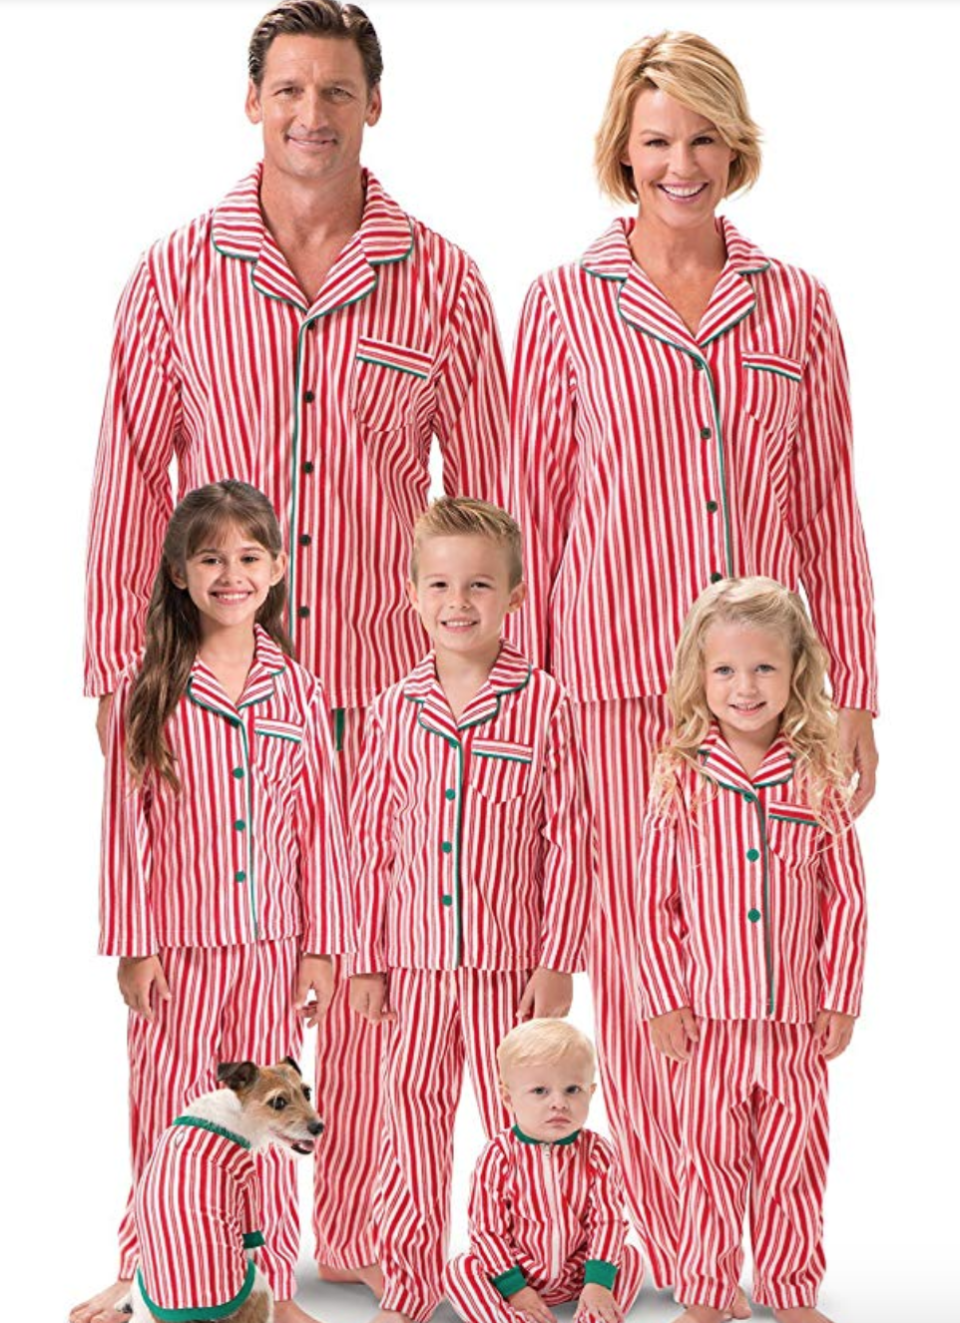 """<p><strong>PajamaGram</strong></p><p>Starting from $20</p><p><a href=""""https://www.amazon.com/dp/B00QVNM7Z6?tag=syn-yahoo-20&ascsubtag=%5Bartid%7C10055.g.4946%5Bsrc%7Cyahoo-us"""" rel=""""nofollow noopener"""" target=""""_blank"""" data-ylk=""""slk:Shop Now"""" class=""""link rapid-noclick-resp"""">Shop Now</a></p><p>Candy canes are arguably the best treat to have on Christmas, so why not dress the whole family up in stripes? </p>"""